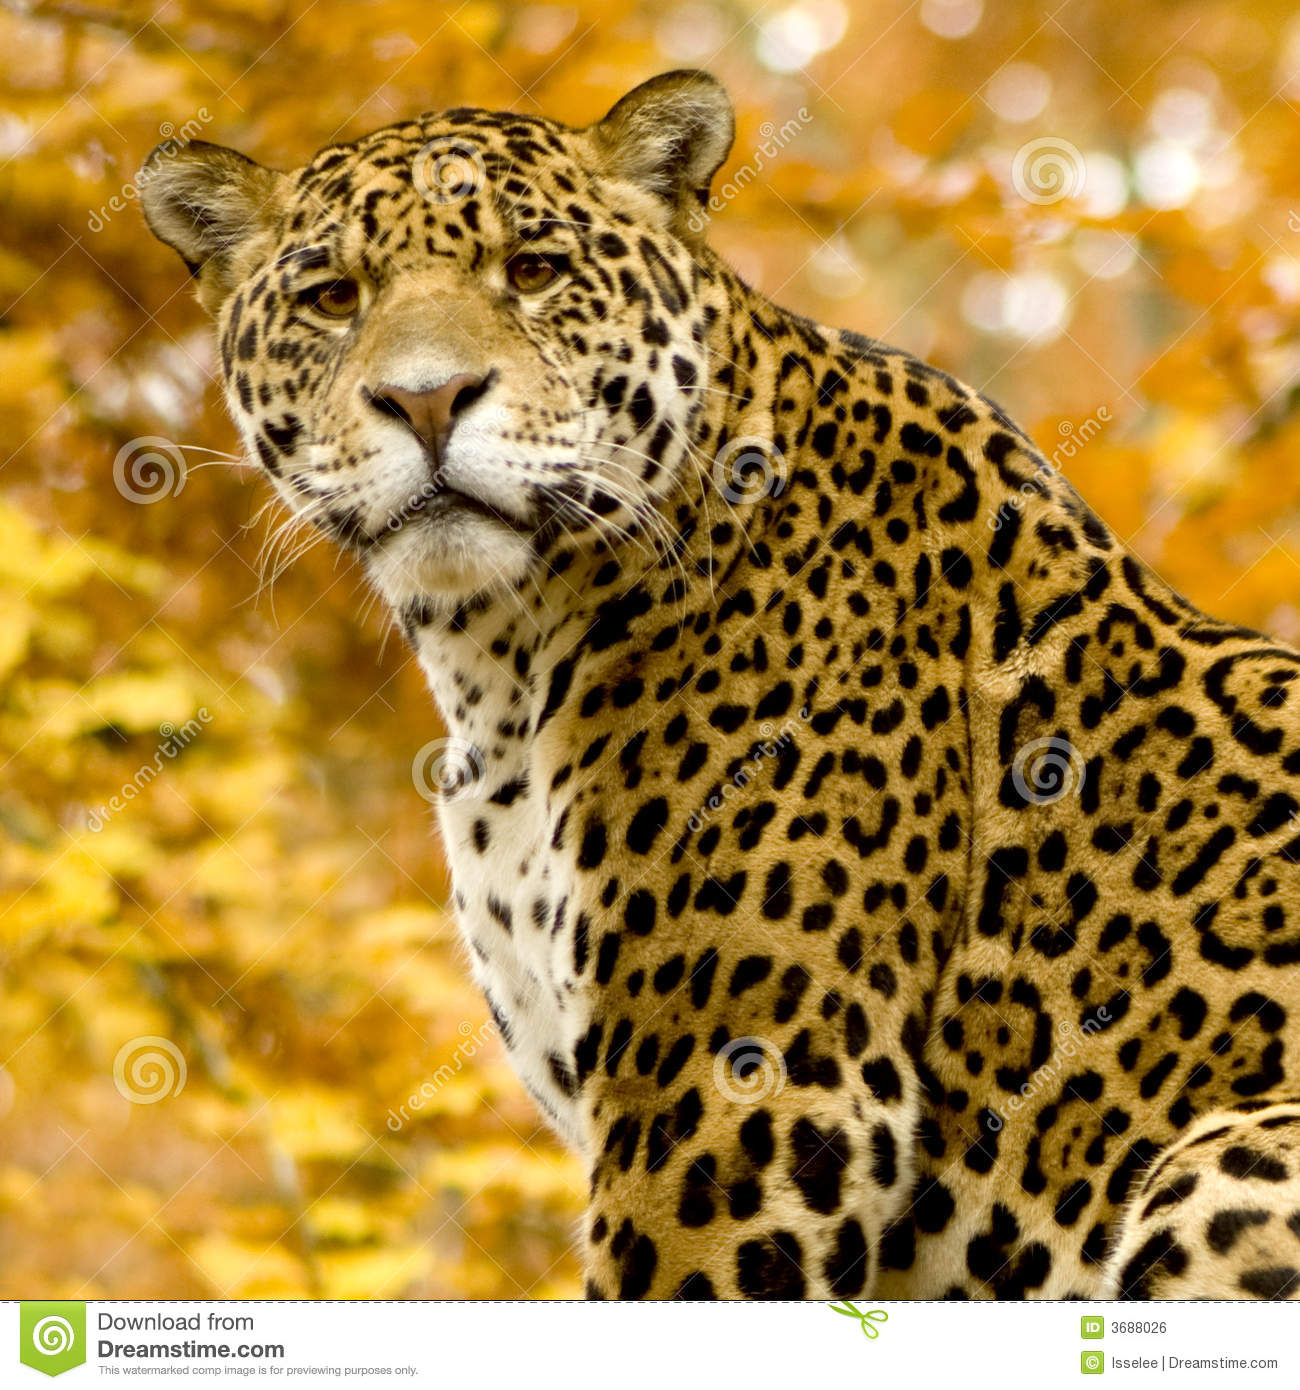 Panthera Onca Stock Images: Panthera Onca Stock Photo. Image Of Wildlife